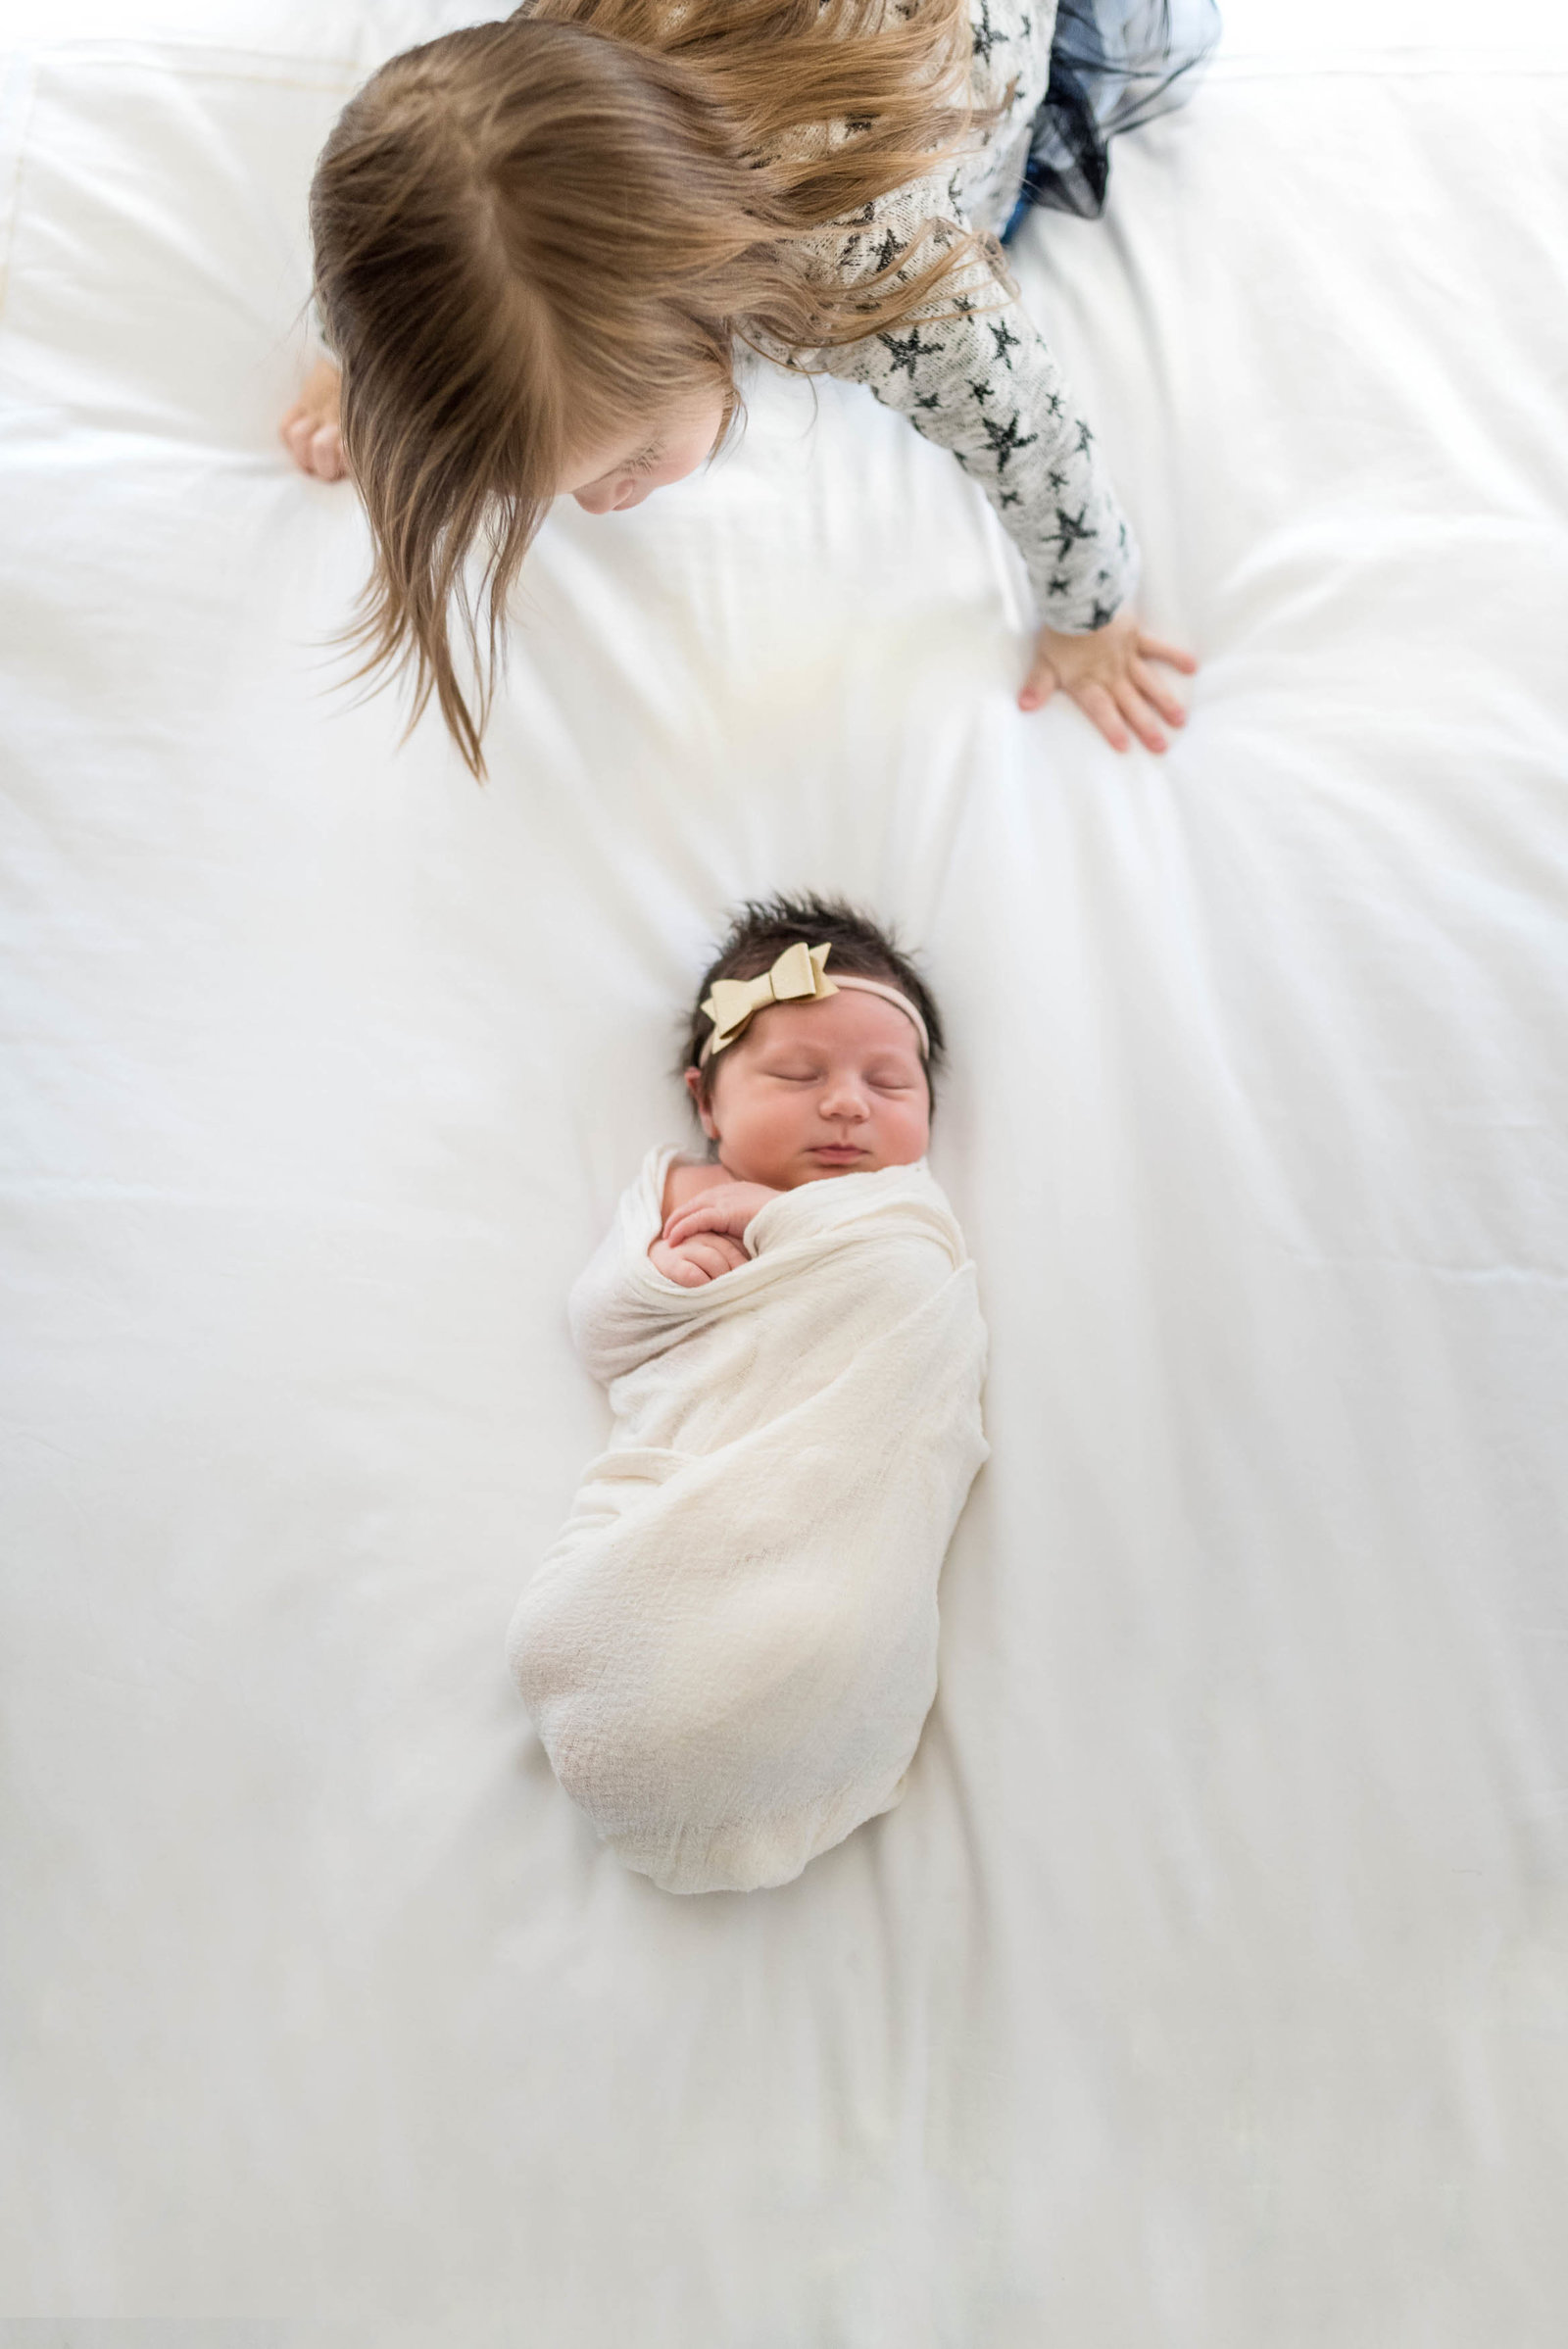 Boston-Newborn-Photographer-Lifestyle-Documentary-Home-Styled-Session-287